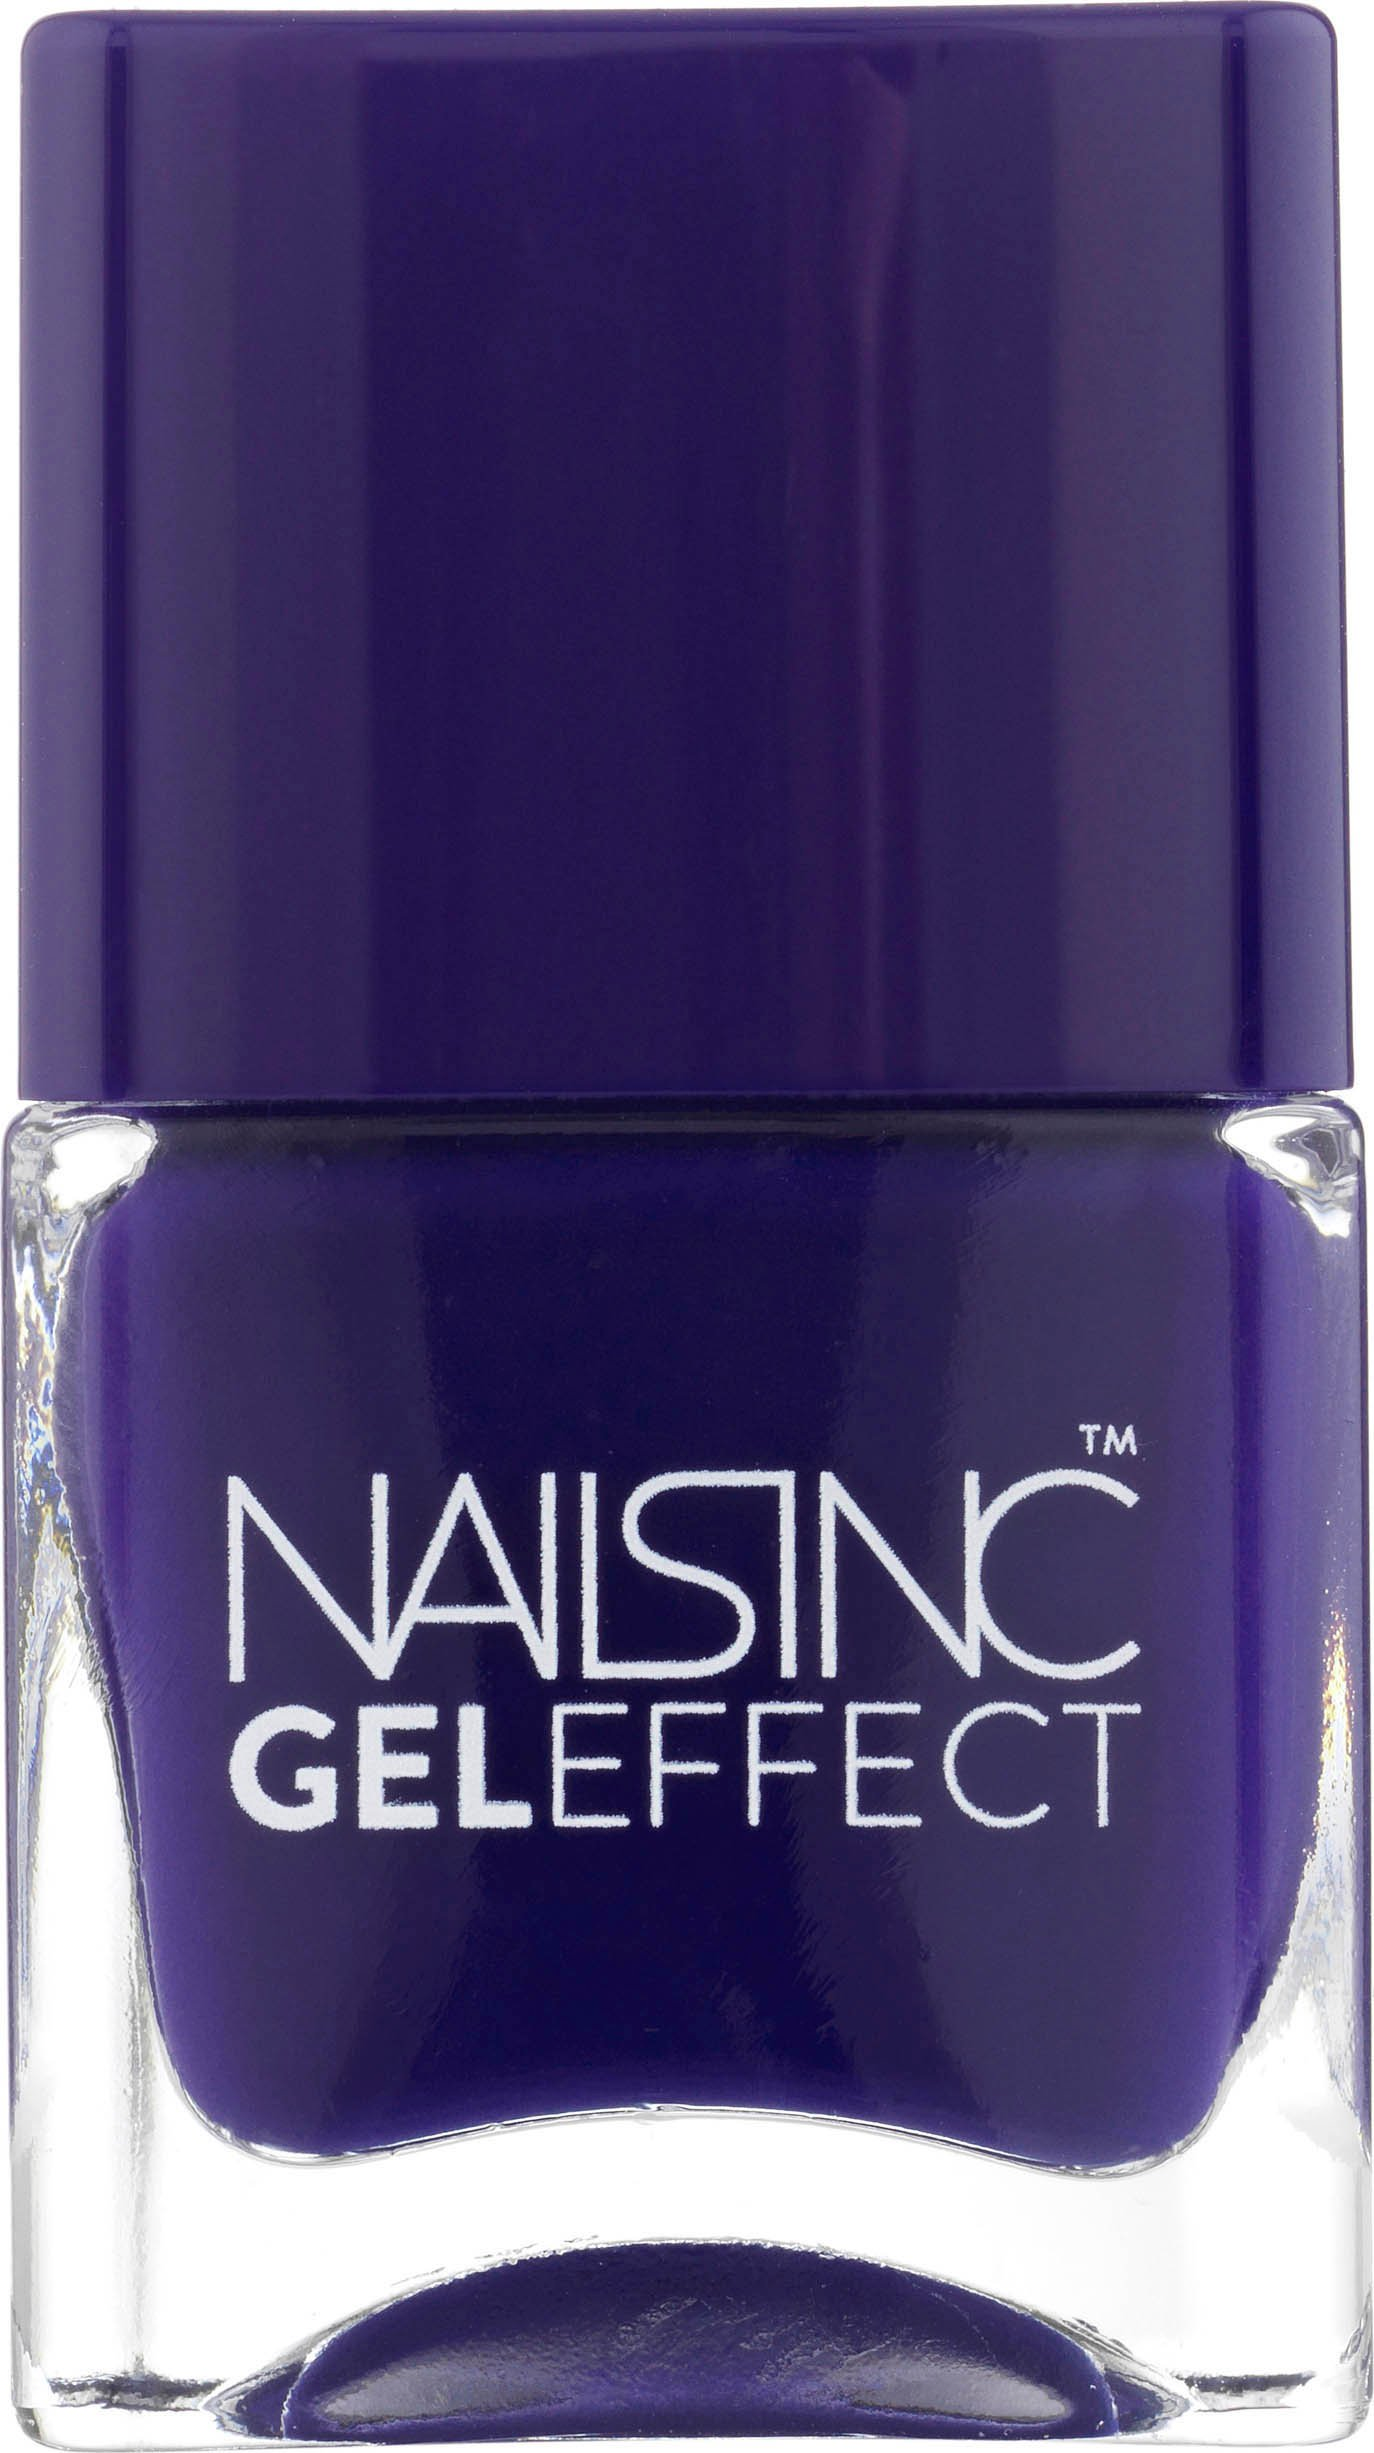 Nails Inc - Gel Effect Nail Lacquer 14 ml - Old Bond Street